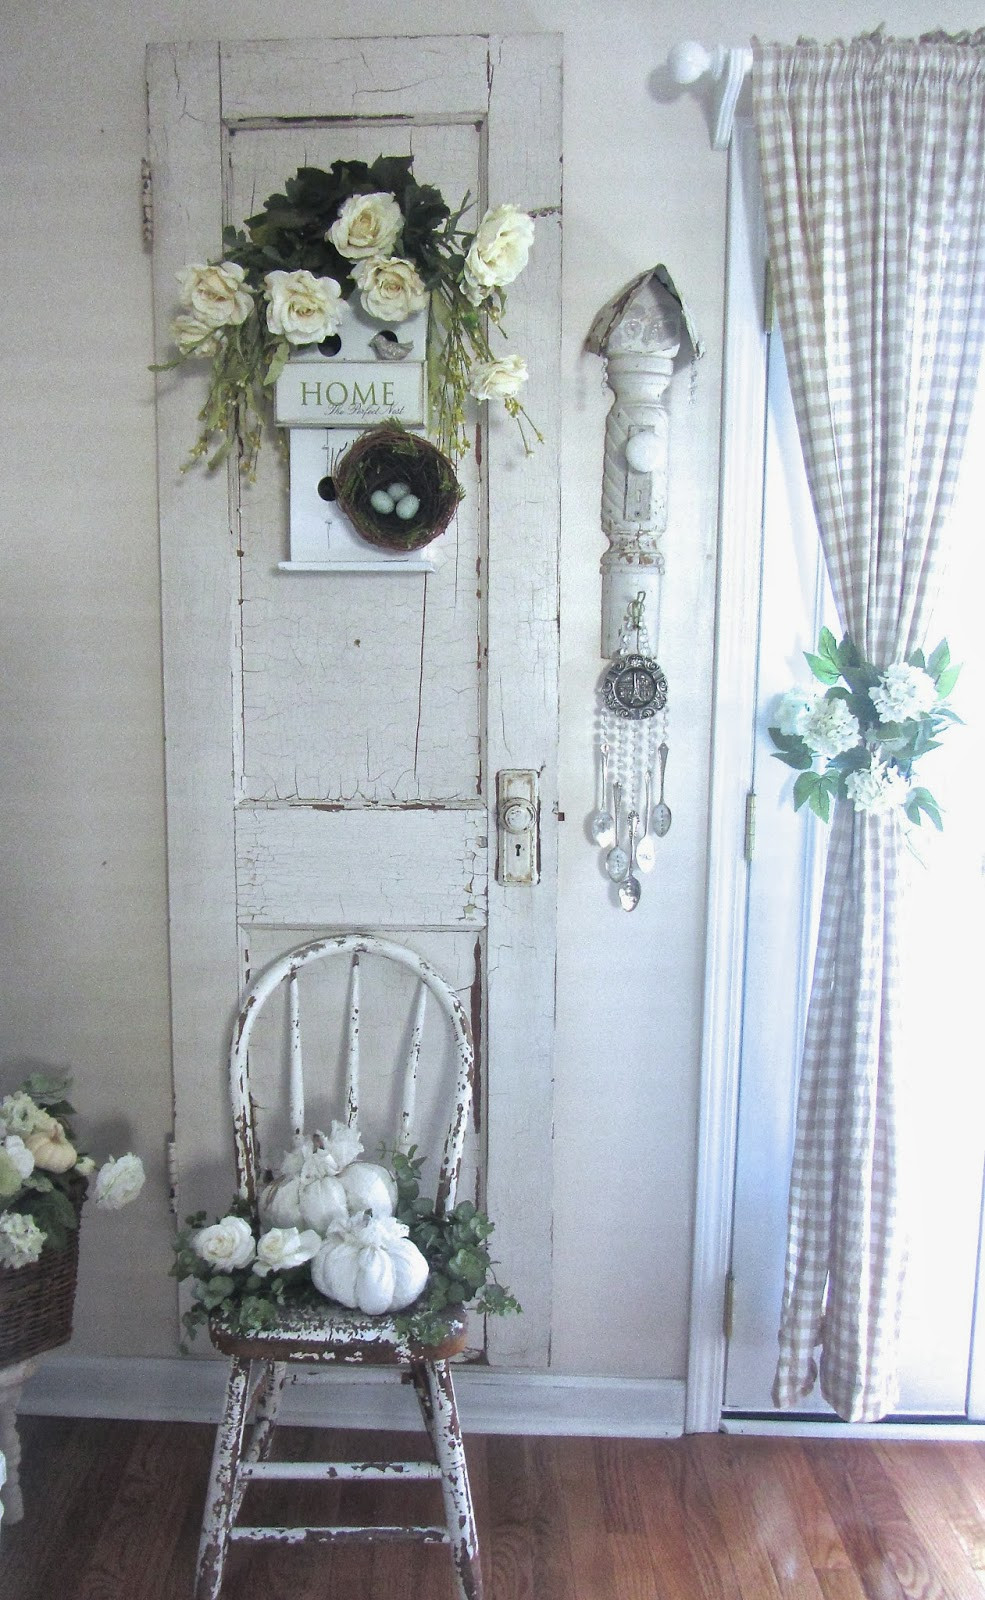 Best ideas about Shabby Chic Art . Save or Pin 1000 images about shabby chic decorating ideas on Now.